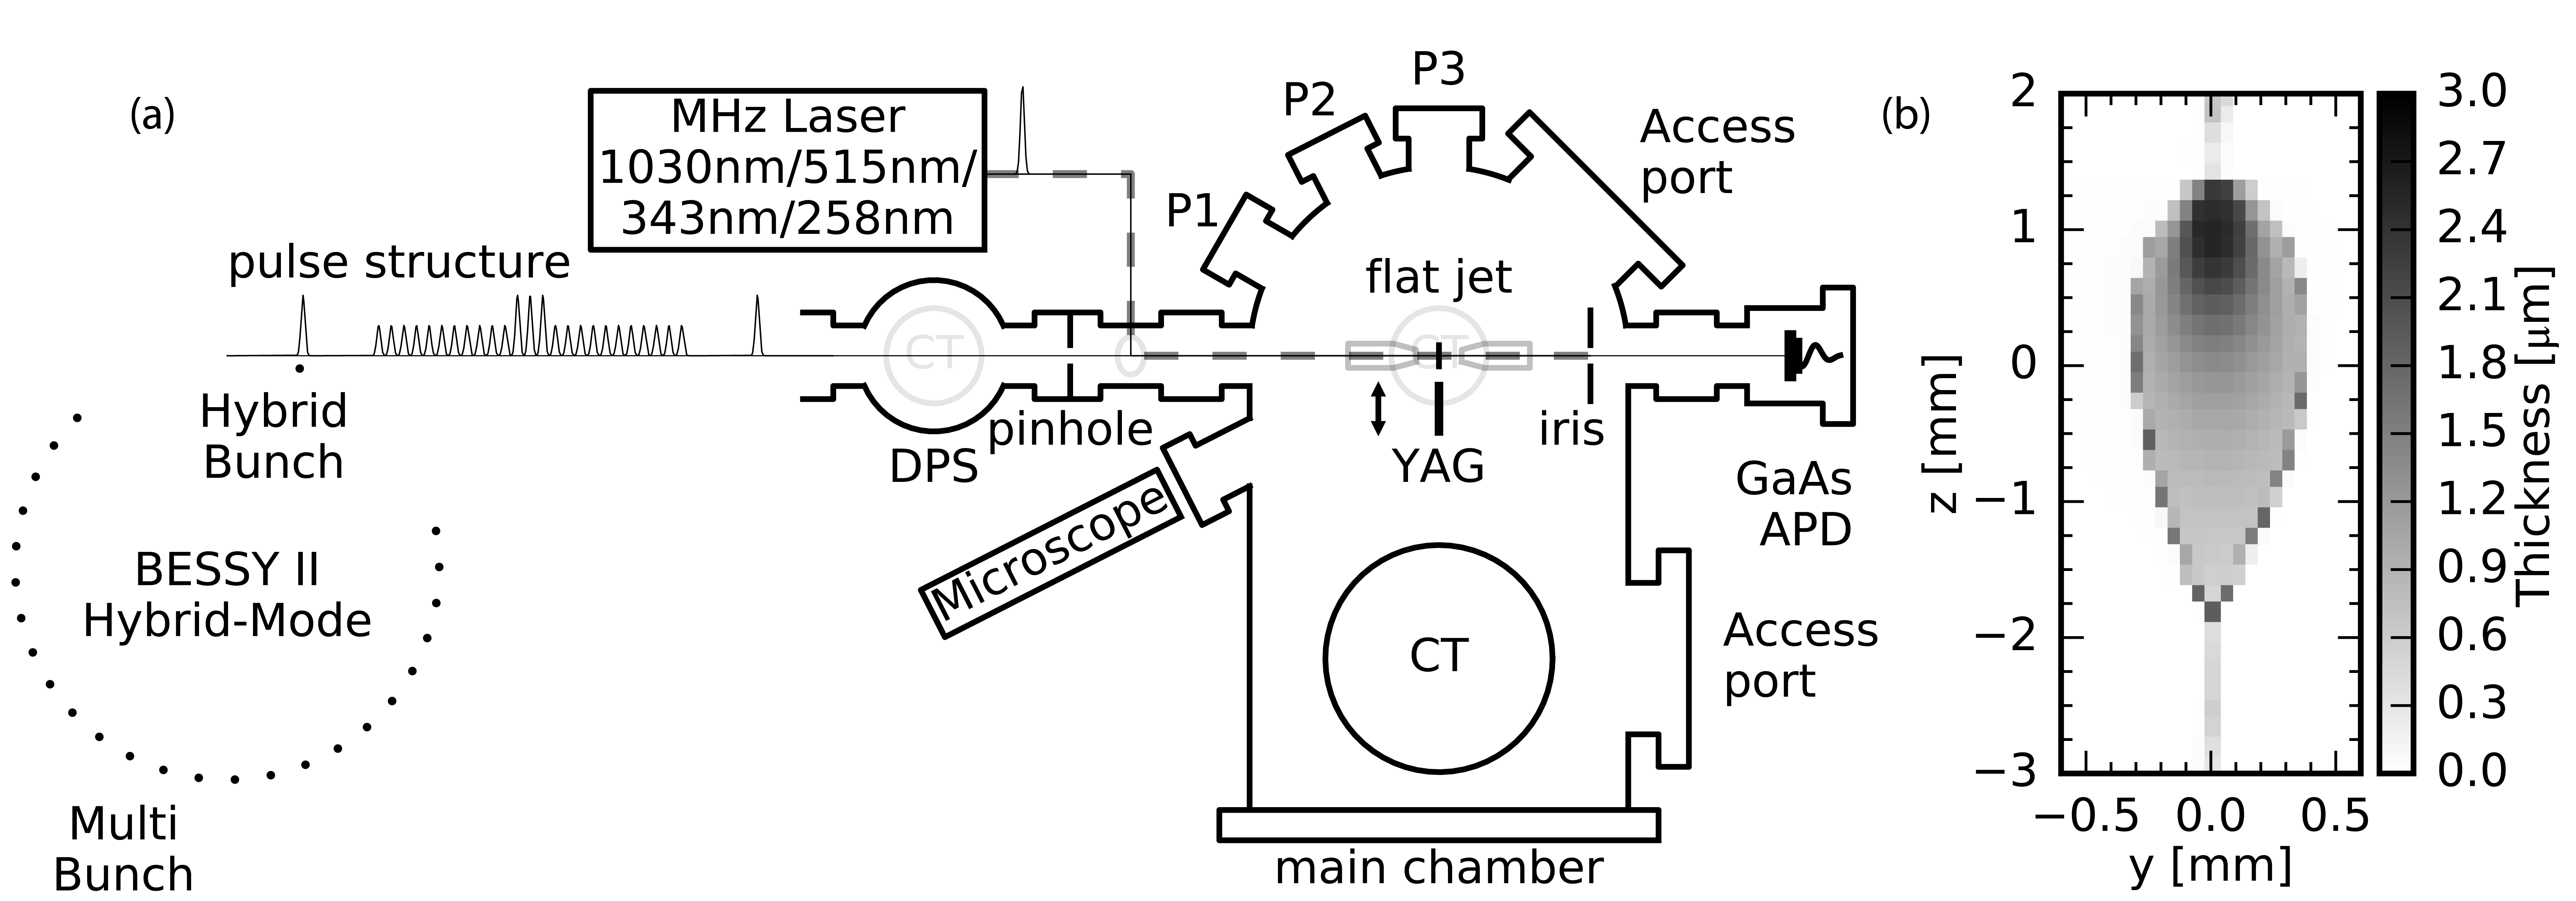 (a) Schematic top view of the experimental layout for static and time resolved NEXAFS measurements of liquid samples. (b) Thickness variation across a water flatjet based on the transmitted intensity